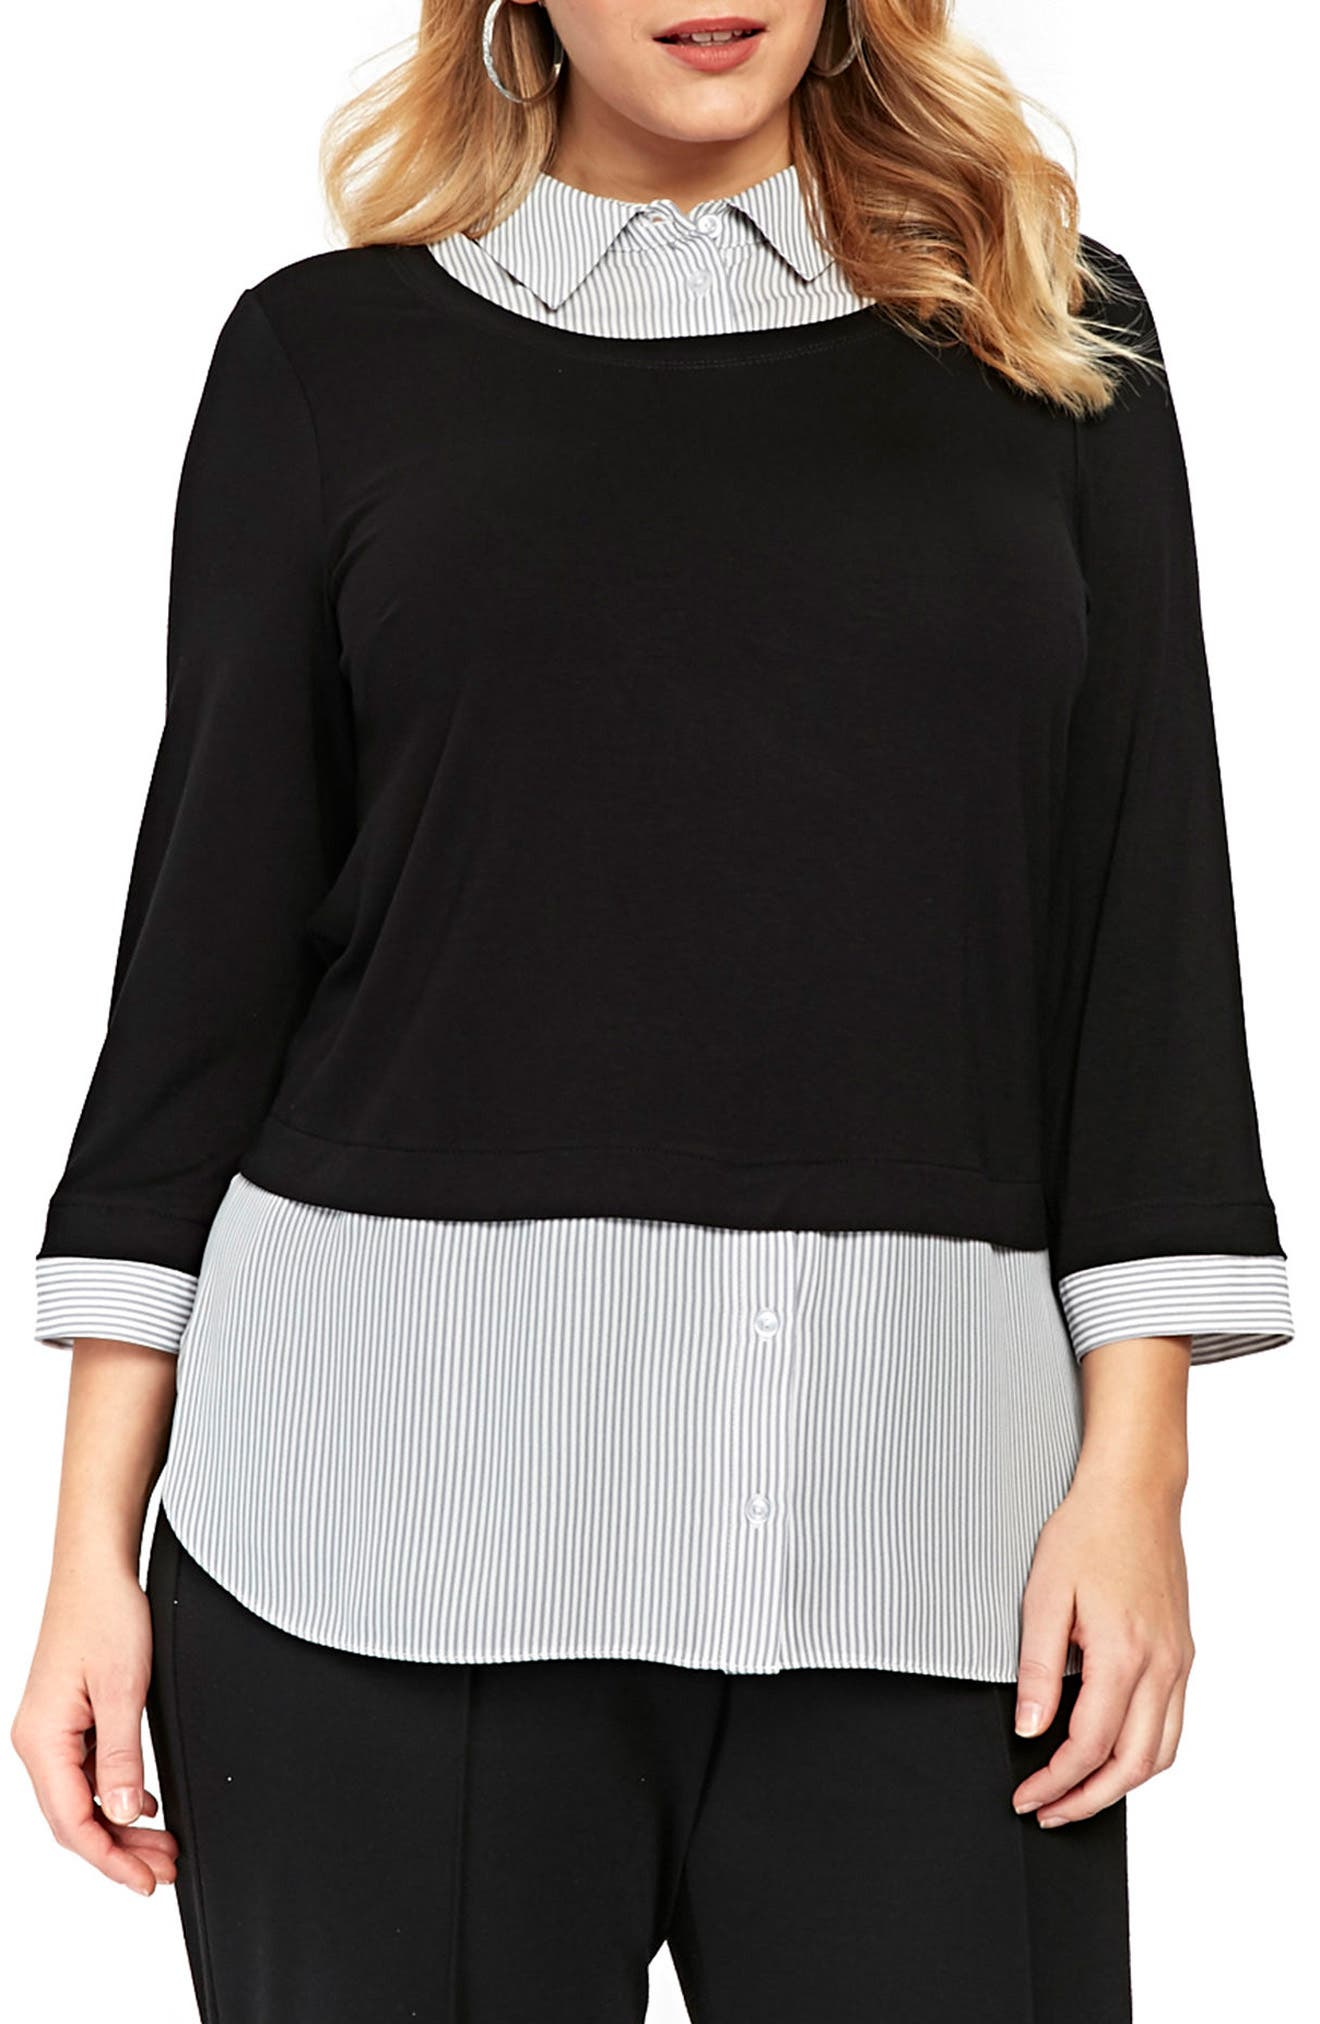 Stripe & Solid 2-in-1 Shirt,                             Main thumbnail 1, color,